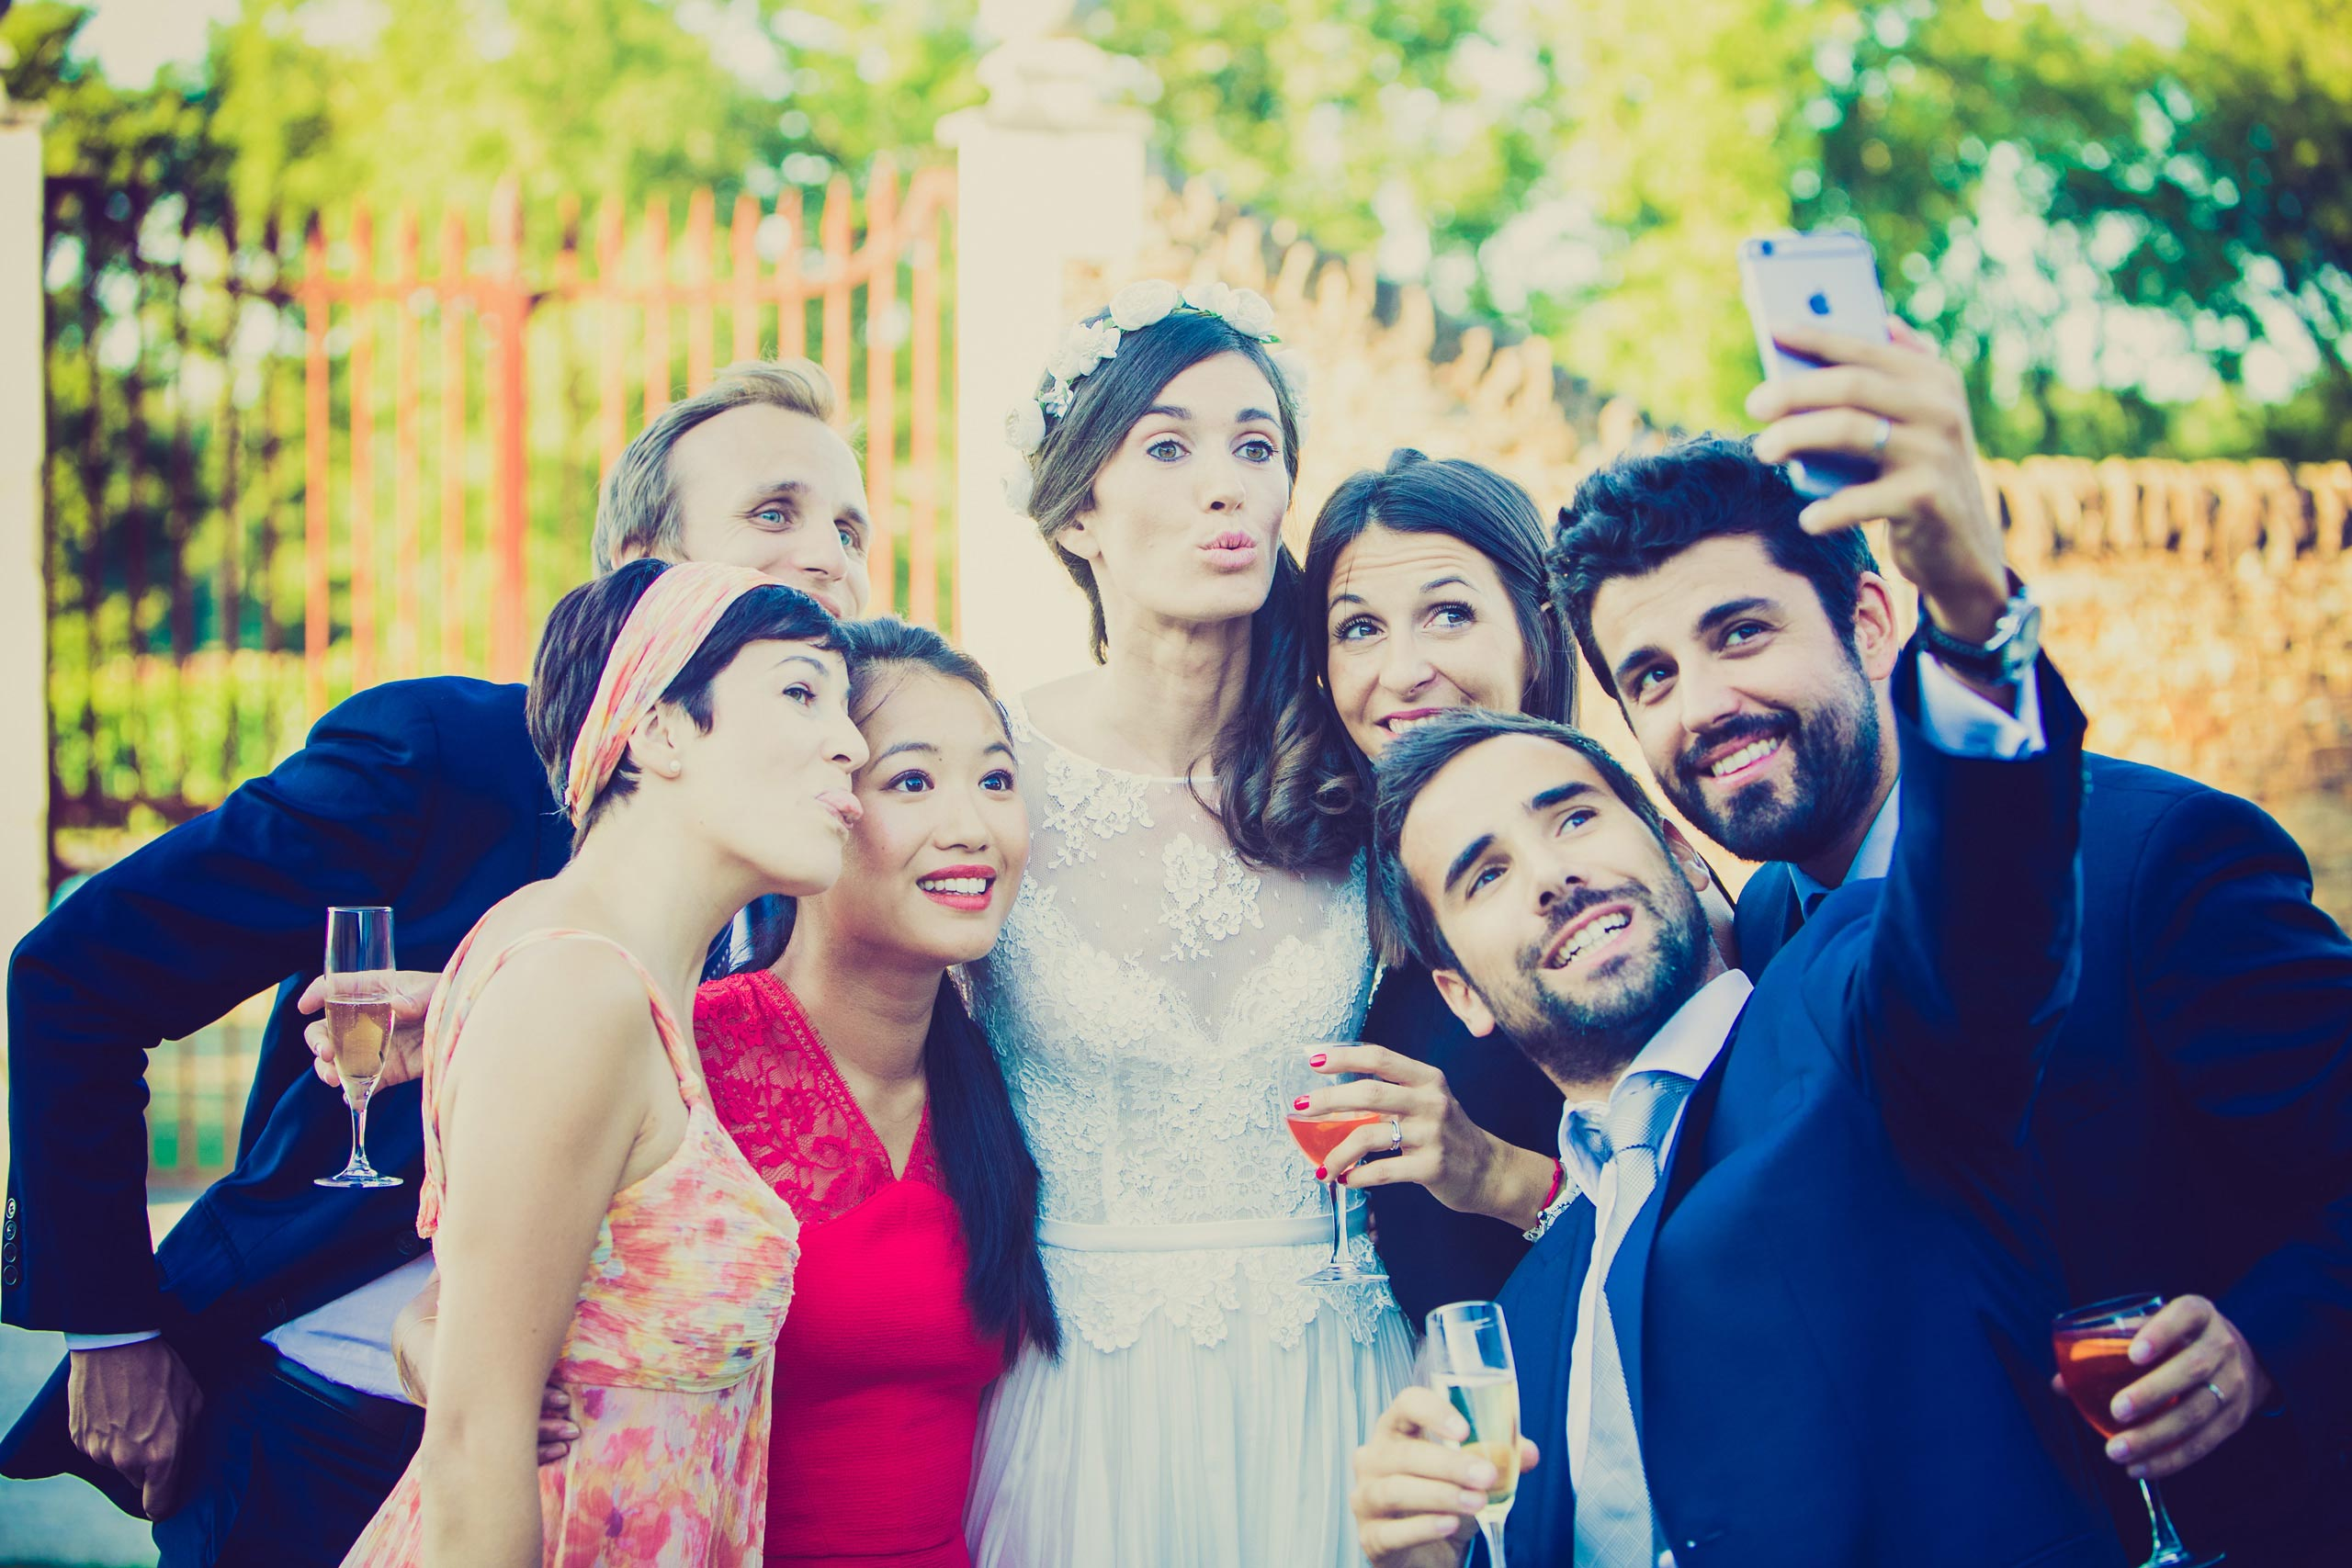 Mariage Video Photo Herault Aveyron Garonne Albi Herault